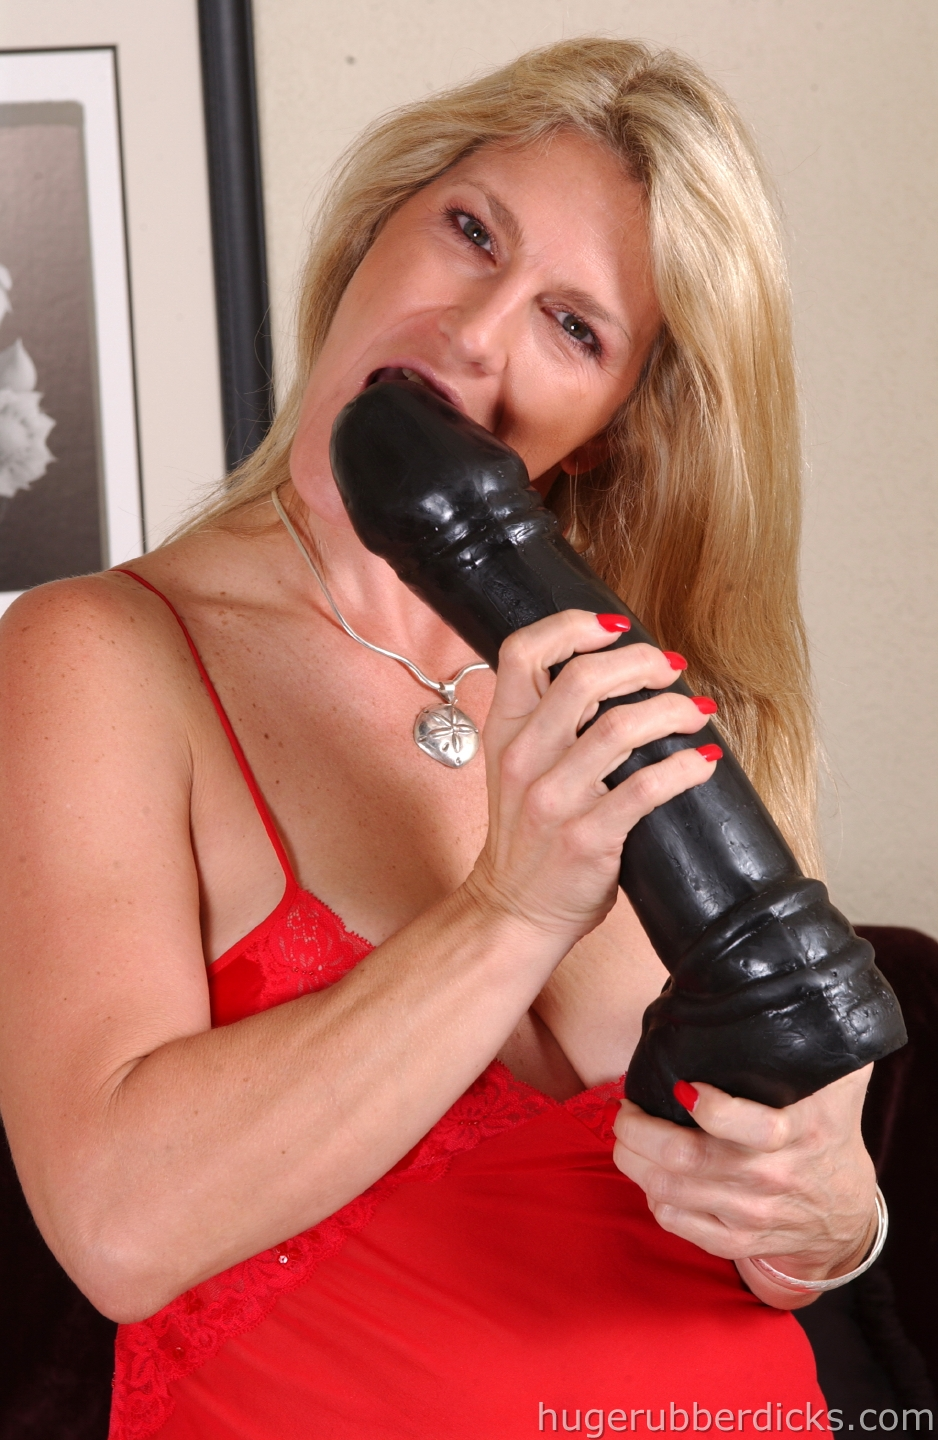 blonde mom in sheer nylons inserts big black dildo in her capacious